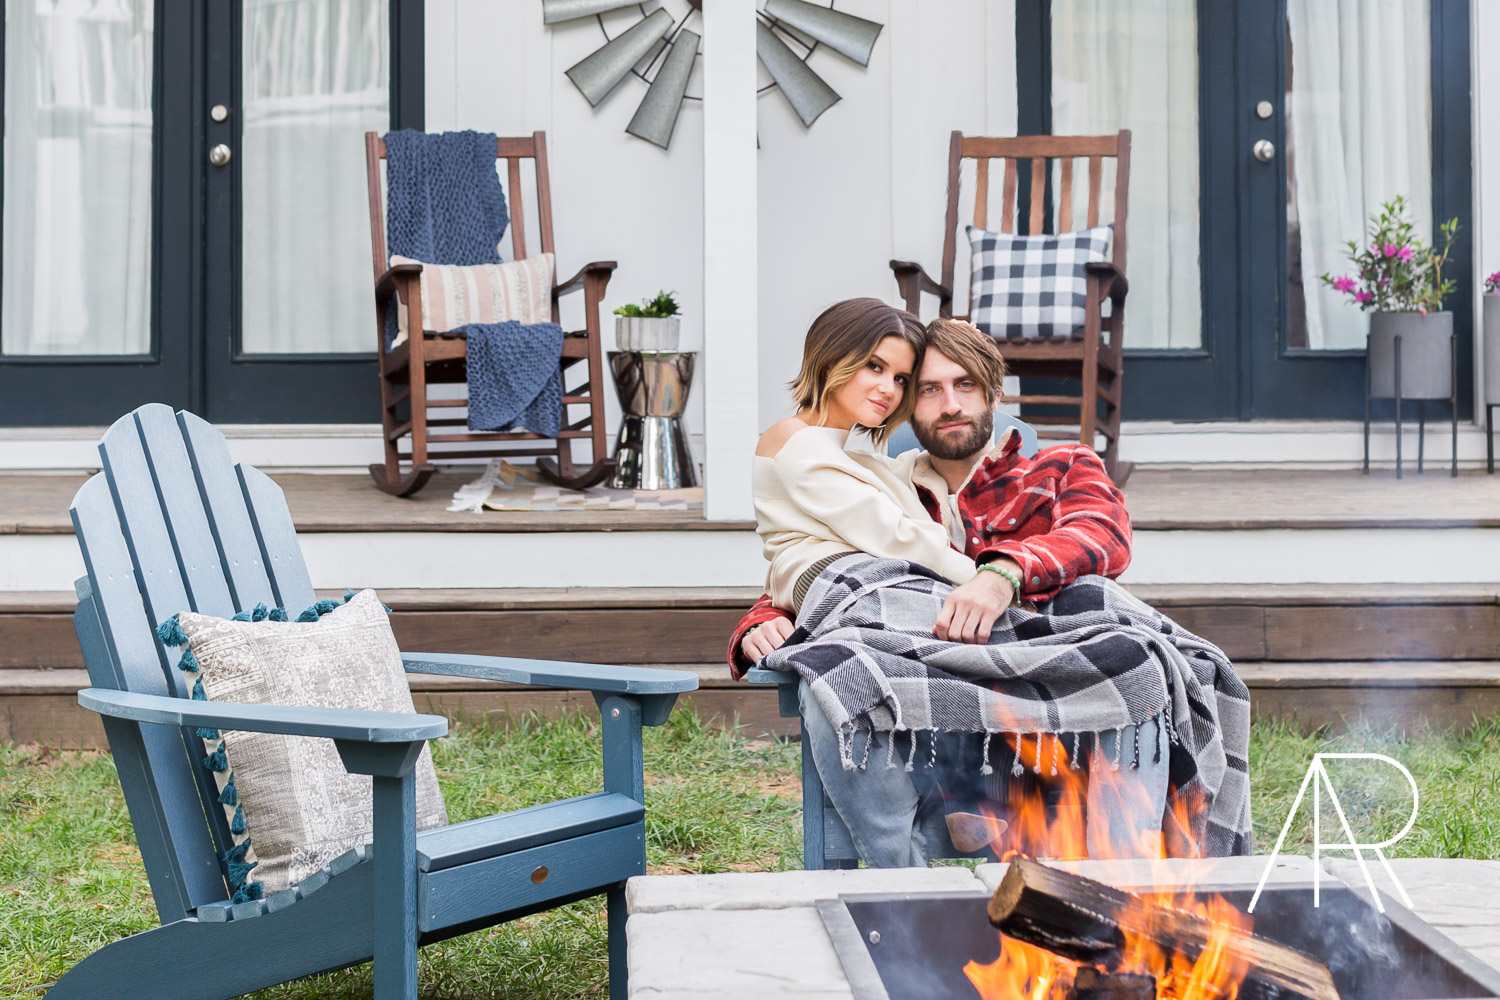 Alyssa Rosenheck founder of The New Southern Wayfair and People Magazine Shoot with Maren Morris and Ryan Hurd ©AlyssaRosenheck